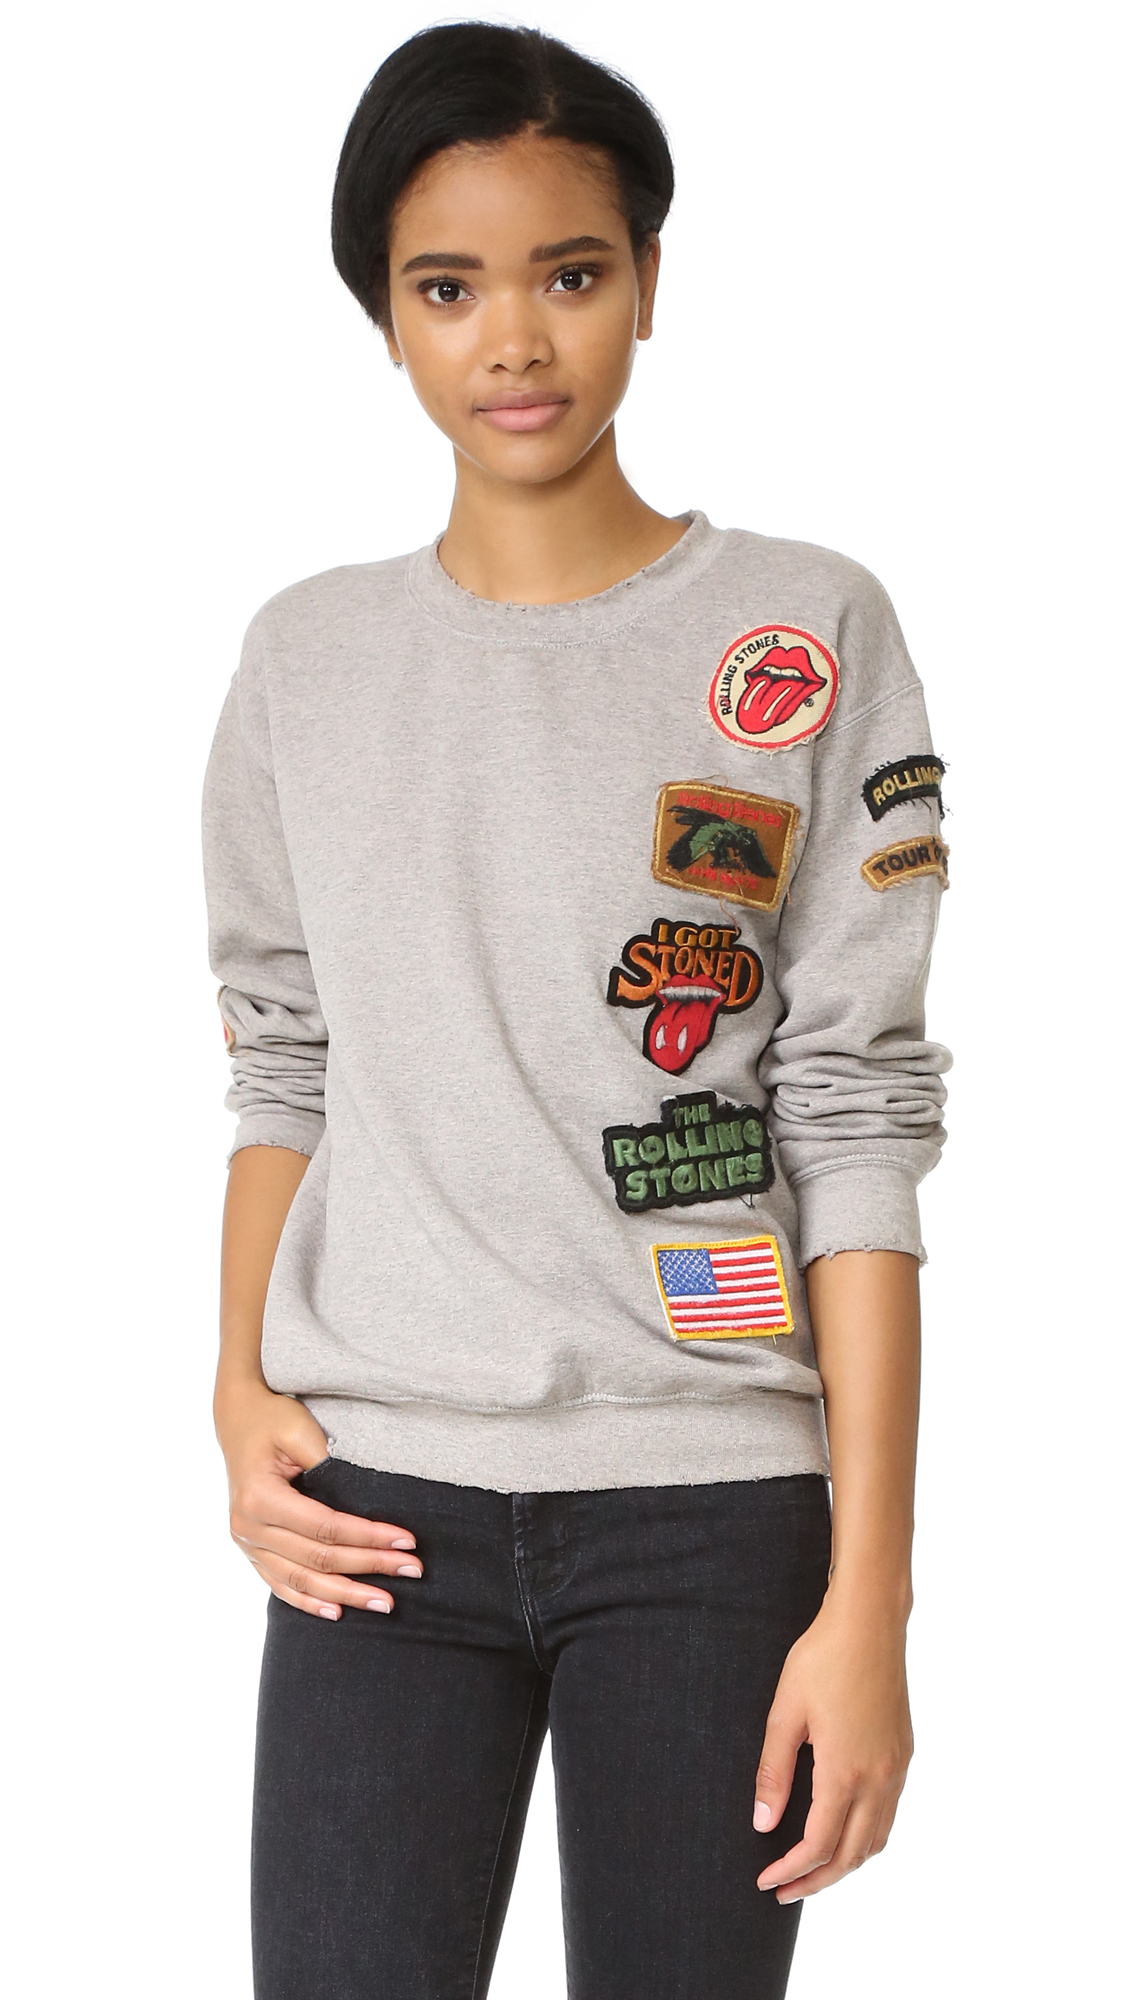 Eclectic patches with a Rolling Stones theme detail this faded MADEWORN ROCK sweatshirt. Banded edges with worn spots. Long sleeves. Fabric: Fleece. 50% polyester/50% cotton. Wash cold. Made in the USA. Patches on item may vary. Measurements